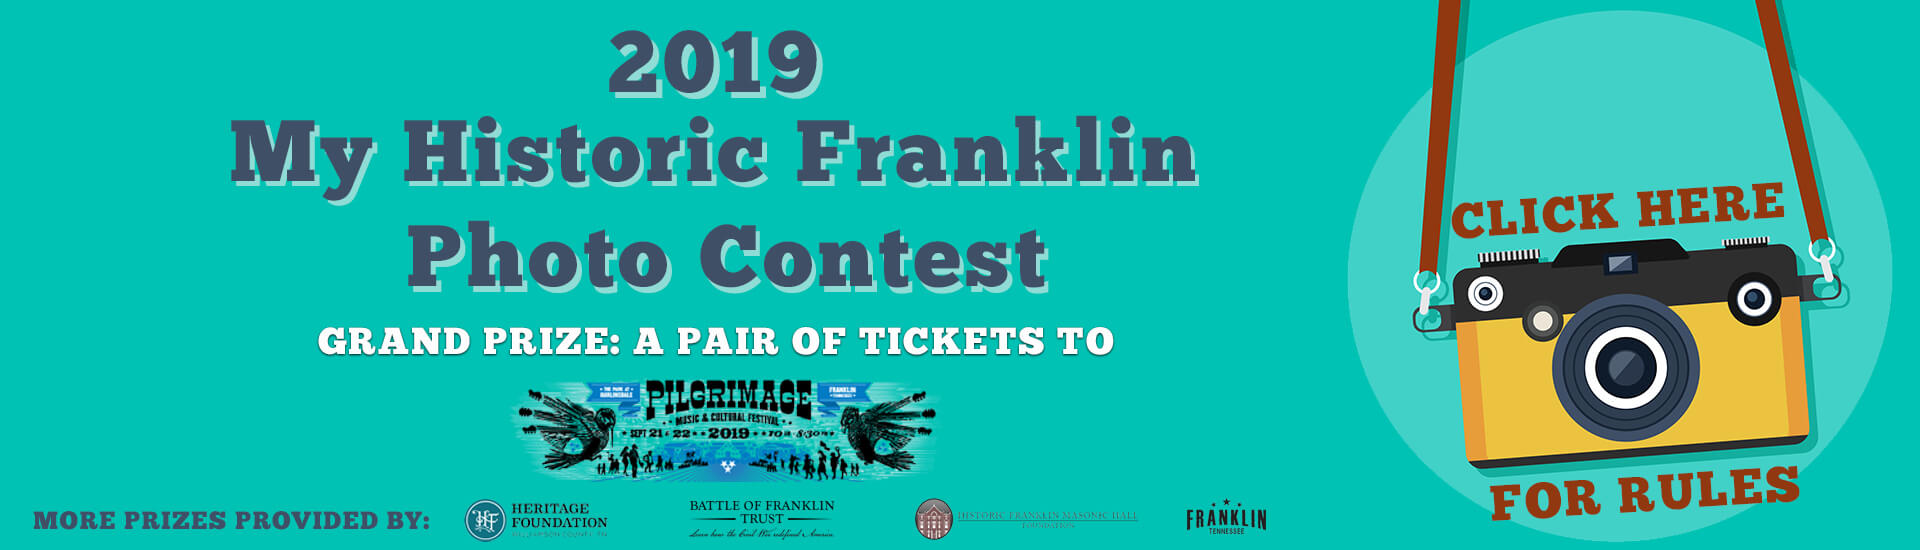 My HIstoric Franklin Photo Contest 2019